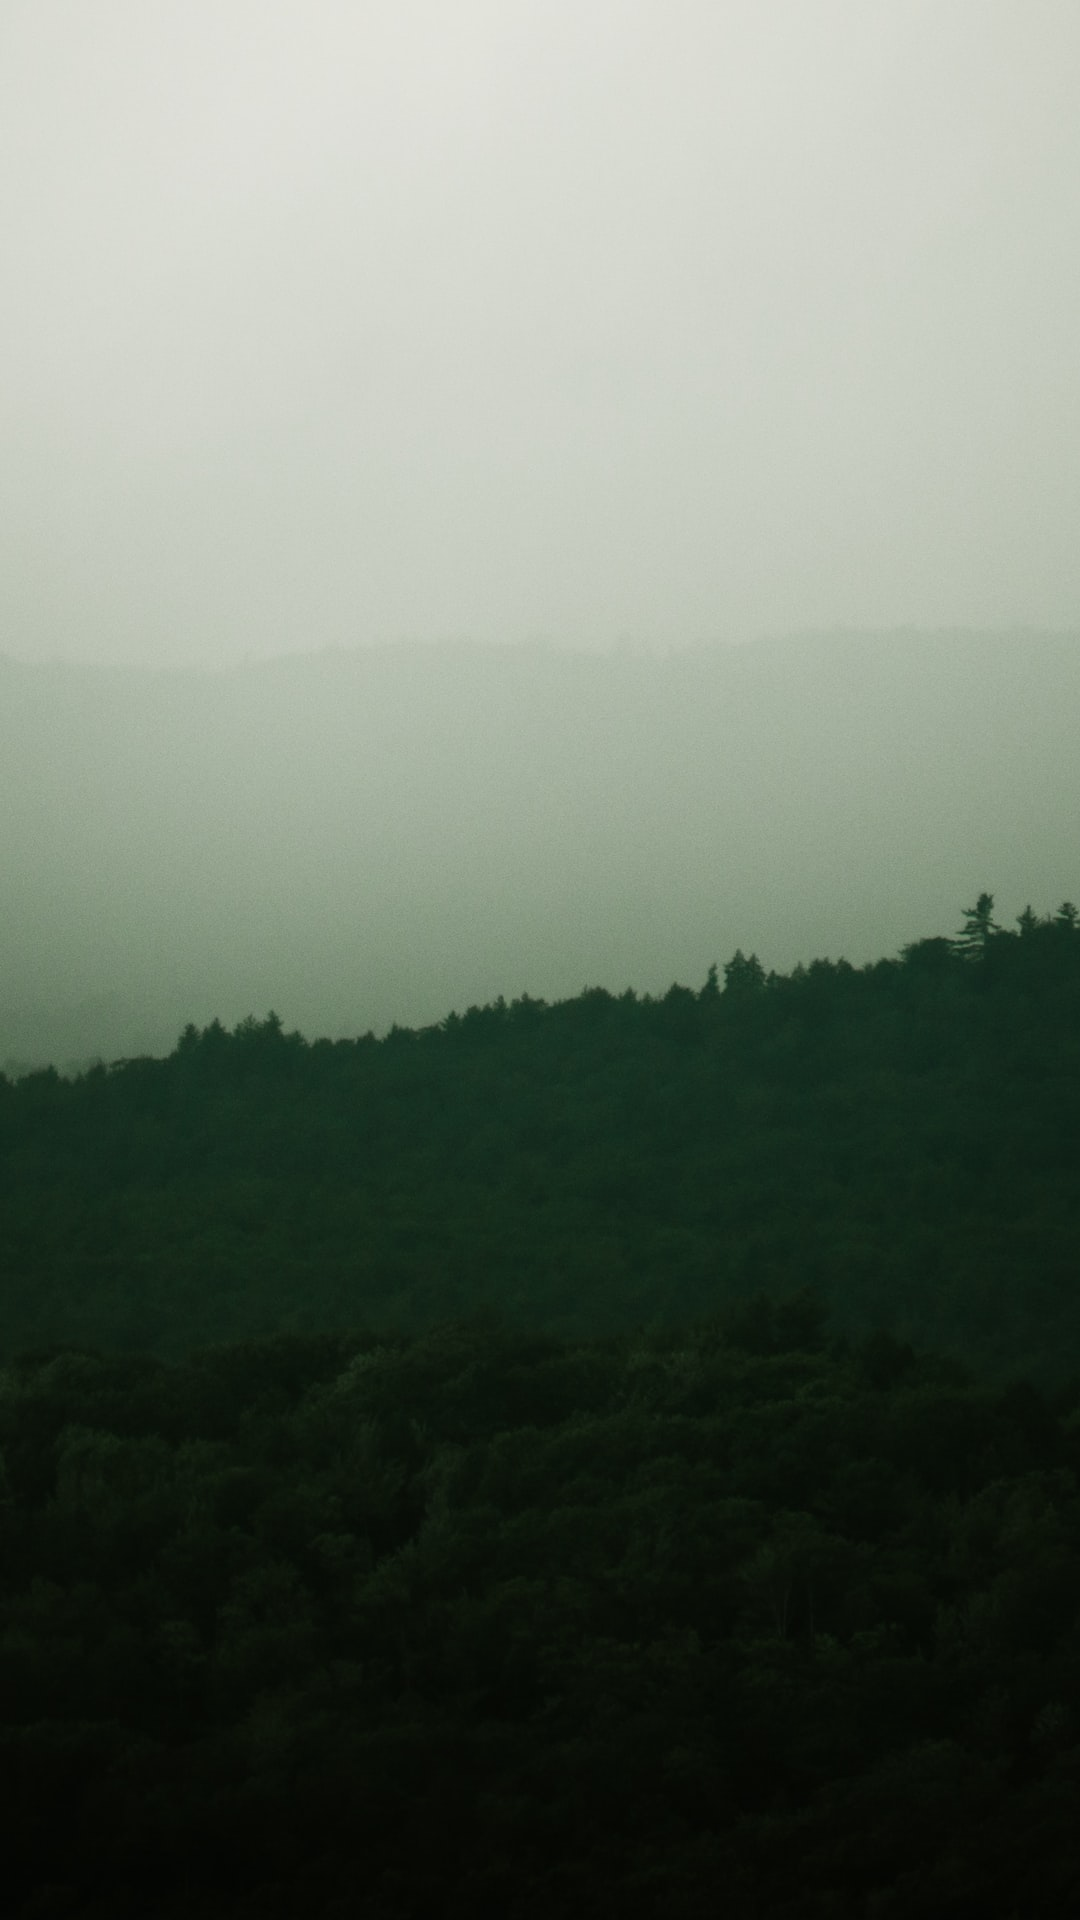 Misty mountainscape with trees silhouetted.